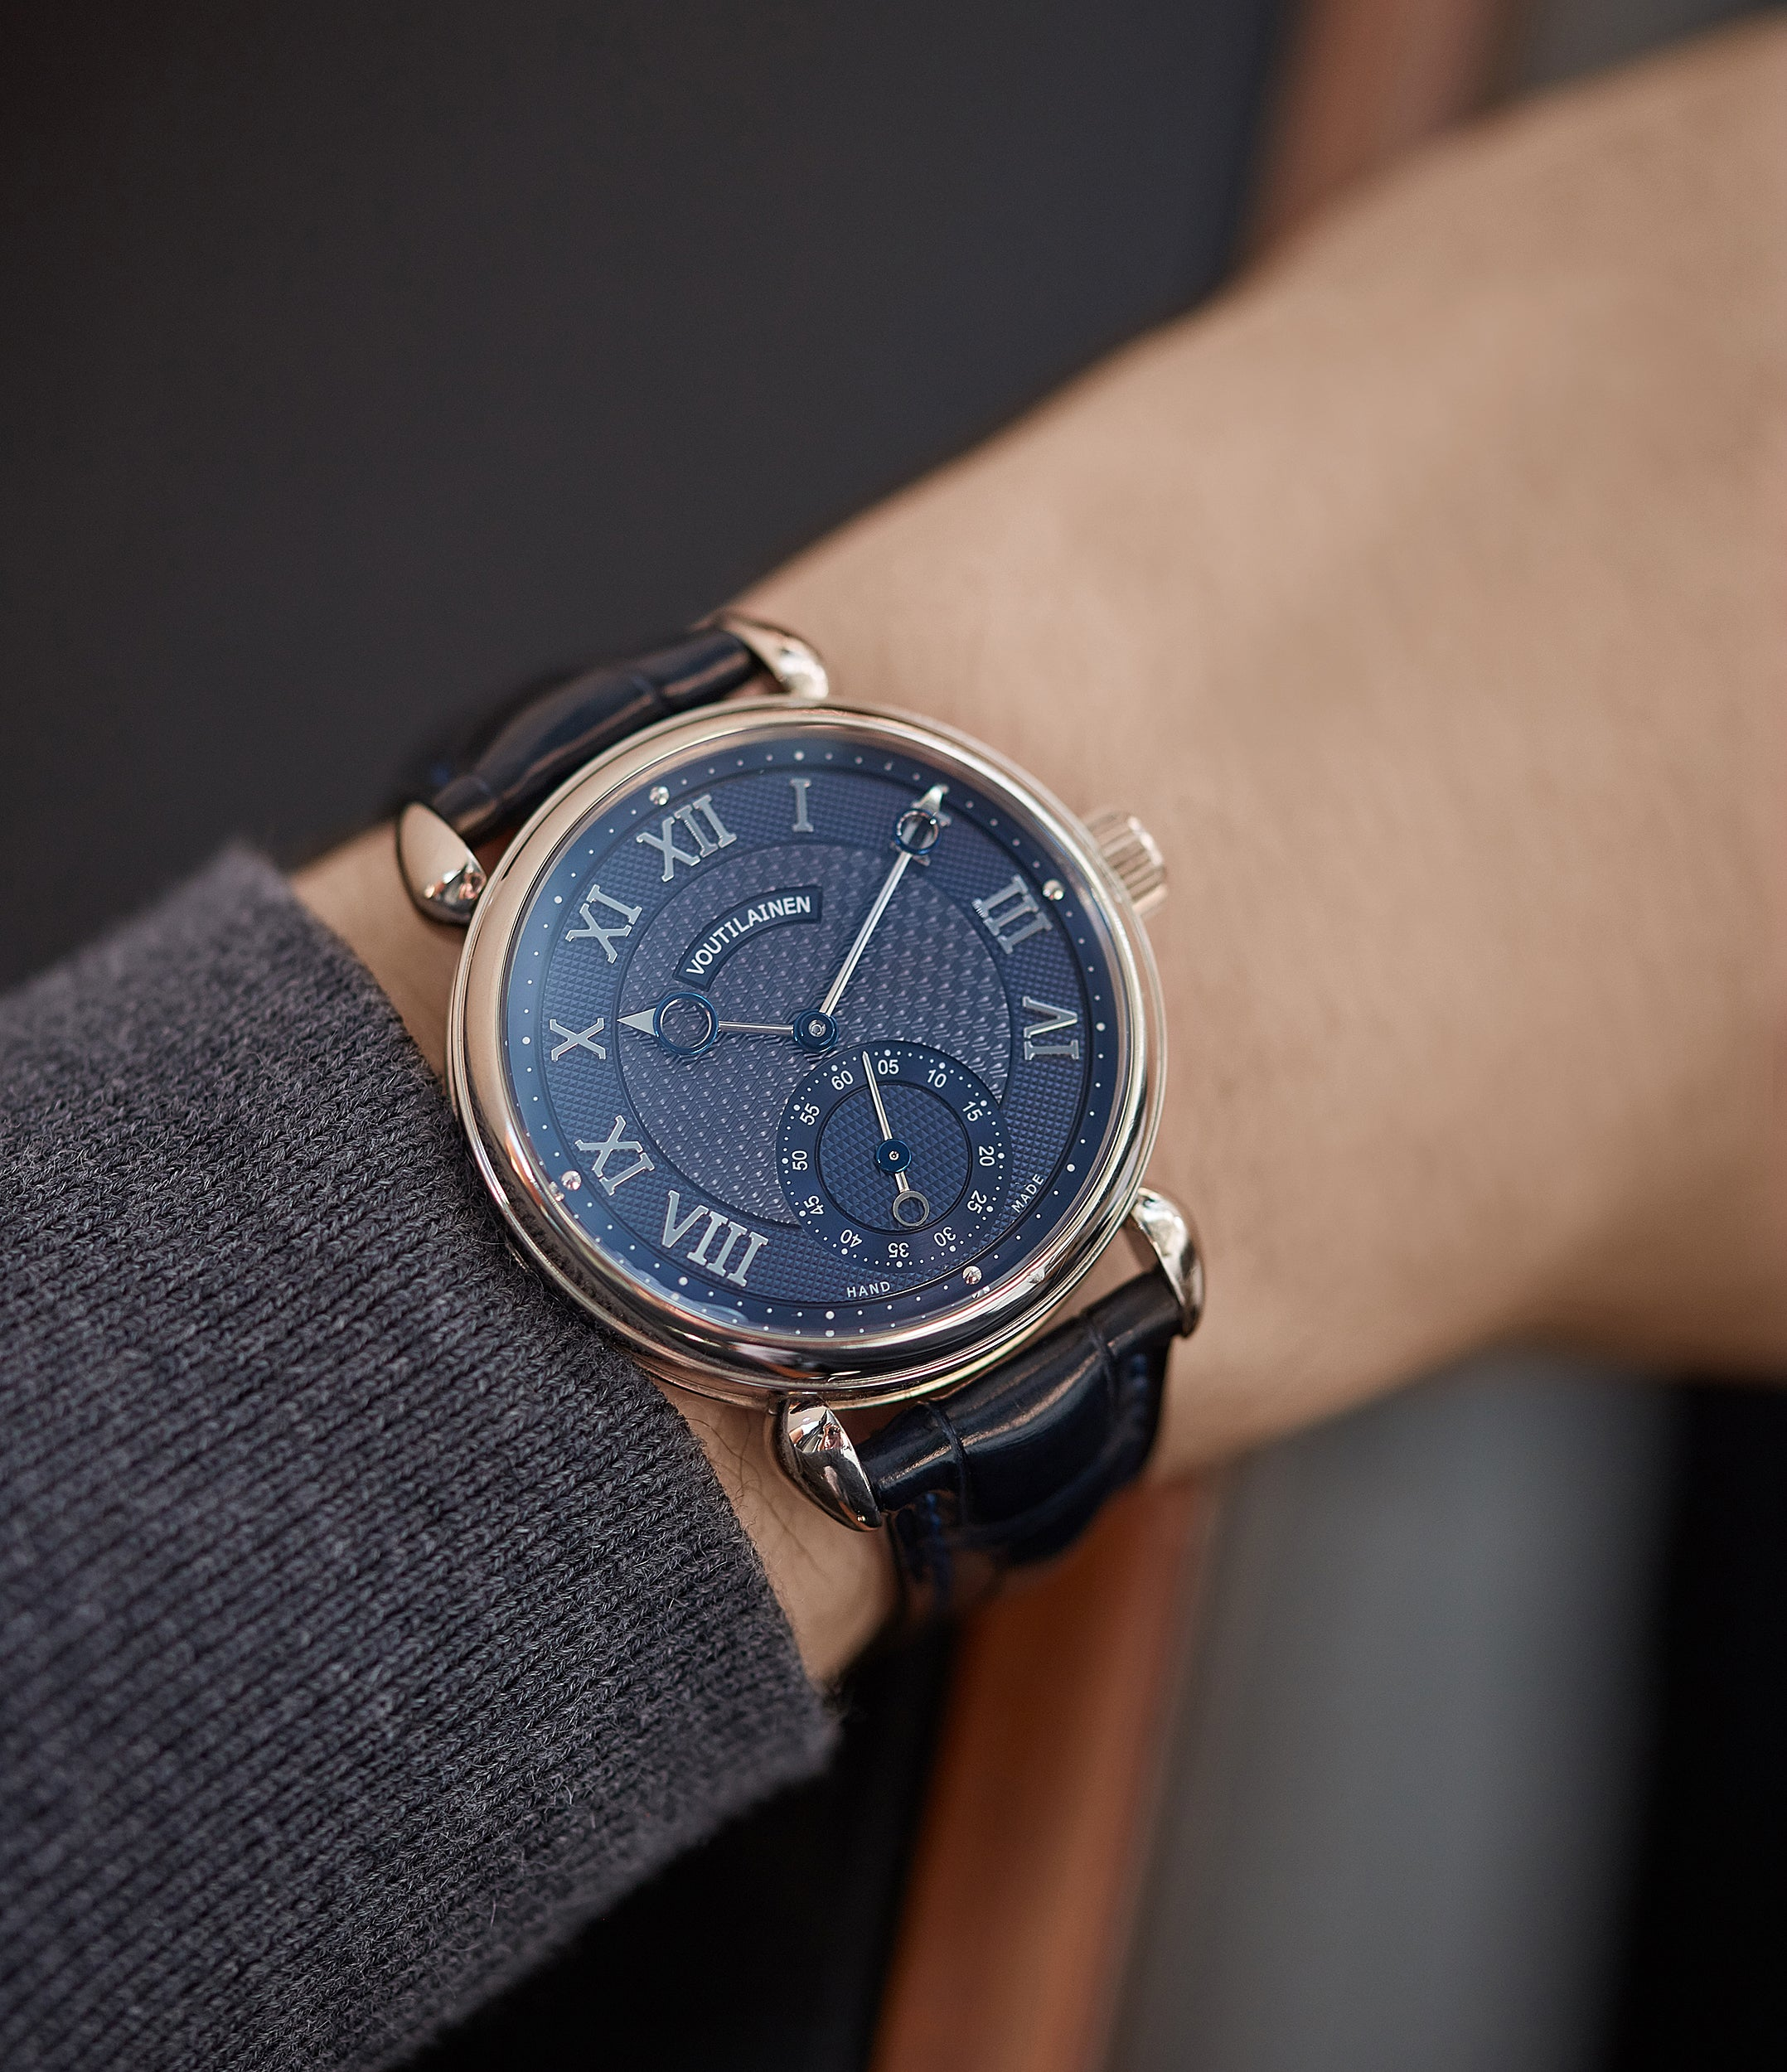 hands-on with Kari Voutilainen's first-ever pre-series Vingt-8 Cal. 28 blue dial white gold watch at A Collected Man London approved re-seller of independent watchmakers